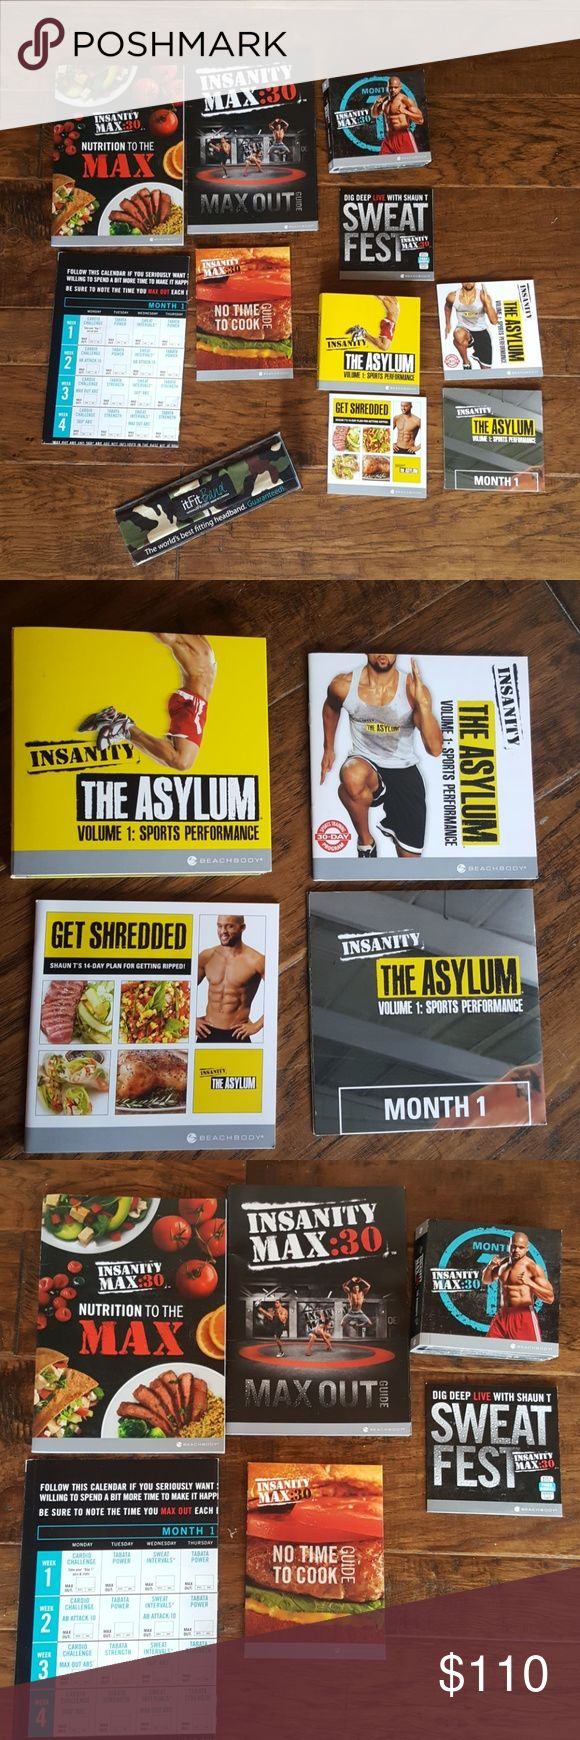 Bundle of Fitness Insanity!! Amazing fitness bundle deal!!  Included: 1) Shaun T's sports program The Asylum.  6 DVD's/bonus workouts 2) Workout calendar 3) 14 day nutrition plan 4) Progress tracker 5)  Shaun T's Insanity Max 30. 12 cardio workouts on 10 DVD's. Each workout only 30 minutes long. No equipment needed  6) Bonus DVD Sweat Fest Workout  7) Maxout Guide 8) Ab Maximizer workout calendar 9) Insanity Nutrition to the Max guide;  10) No Time to Cook Nutrition Guide 11) It Fit camo…